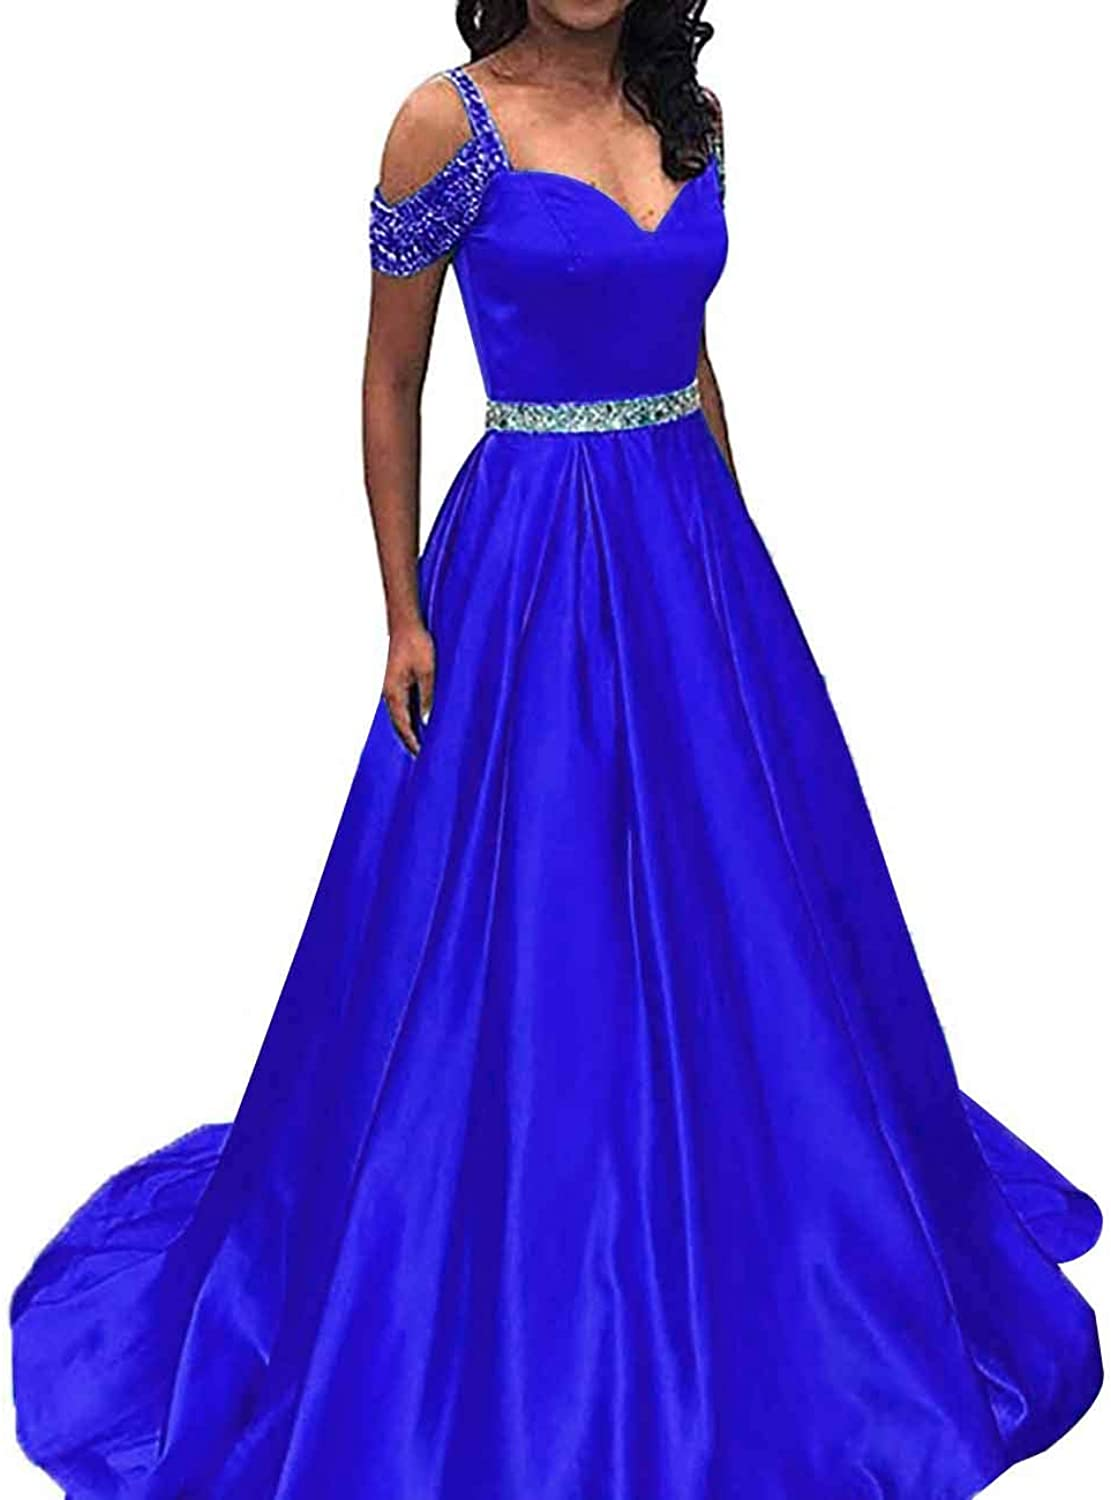 Homdor Long Prom Dresses Cold Shoulder Sequined Sweetheart Satin Evening Ball Gowns